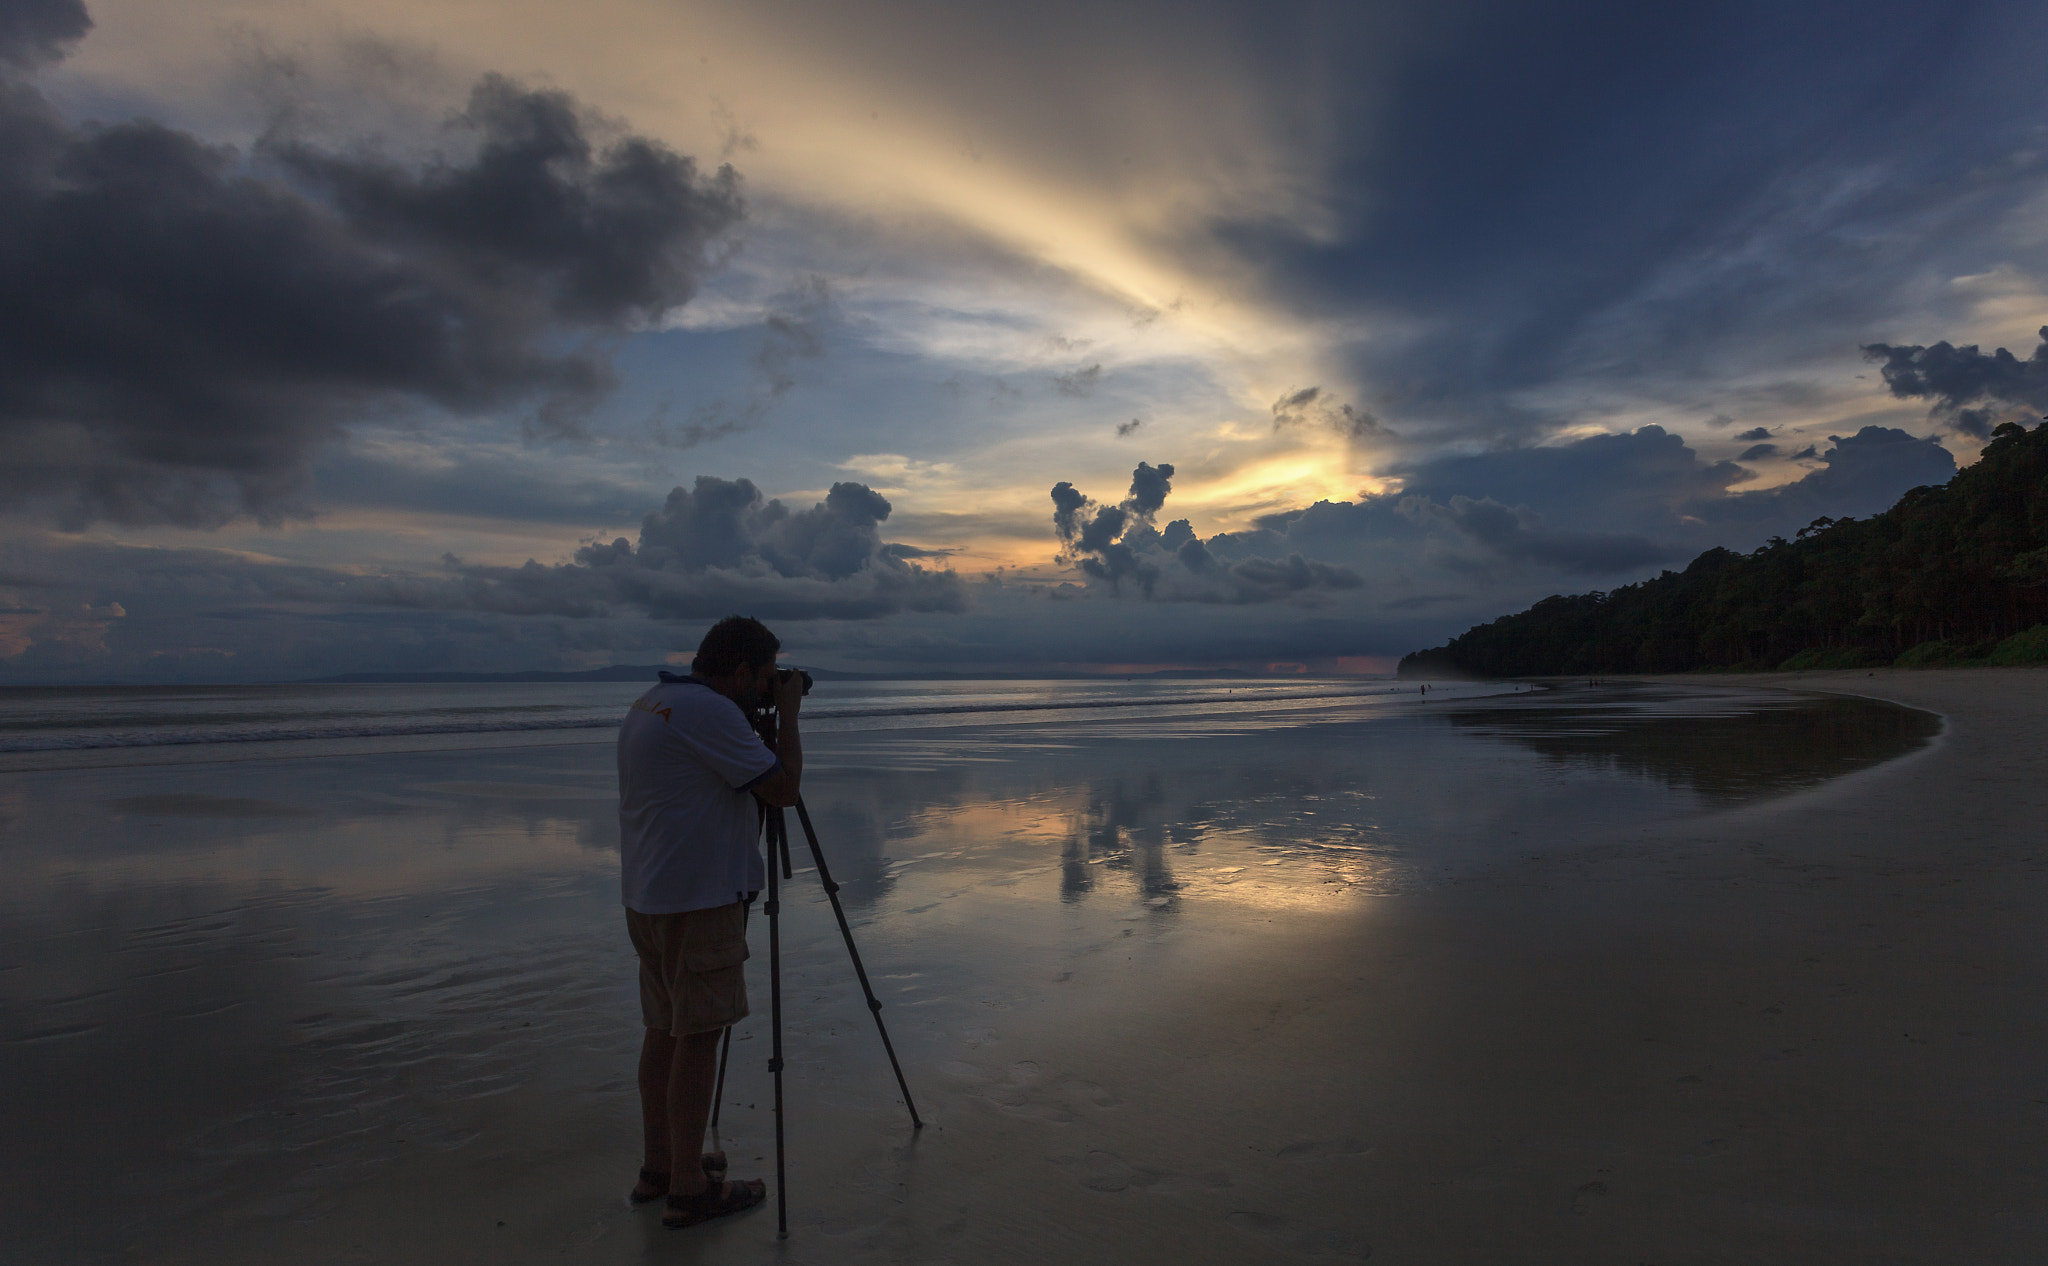 Photograph Photographer by S A  I on 500px